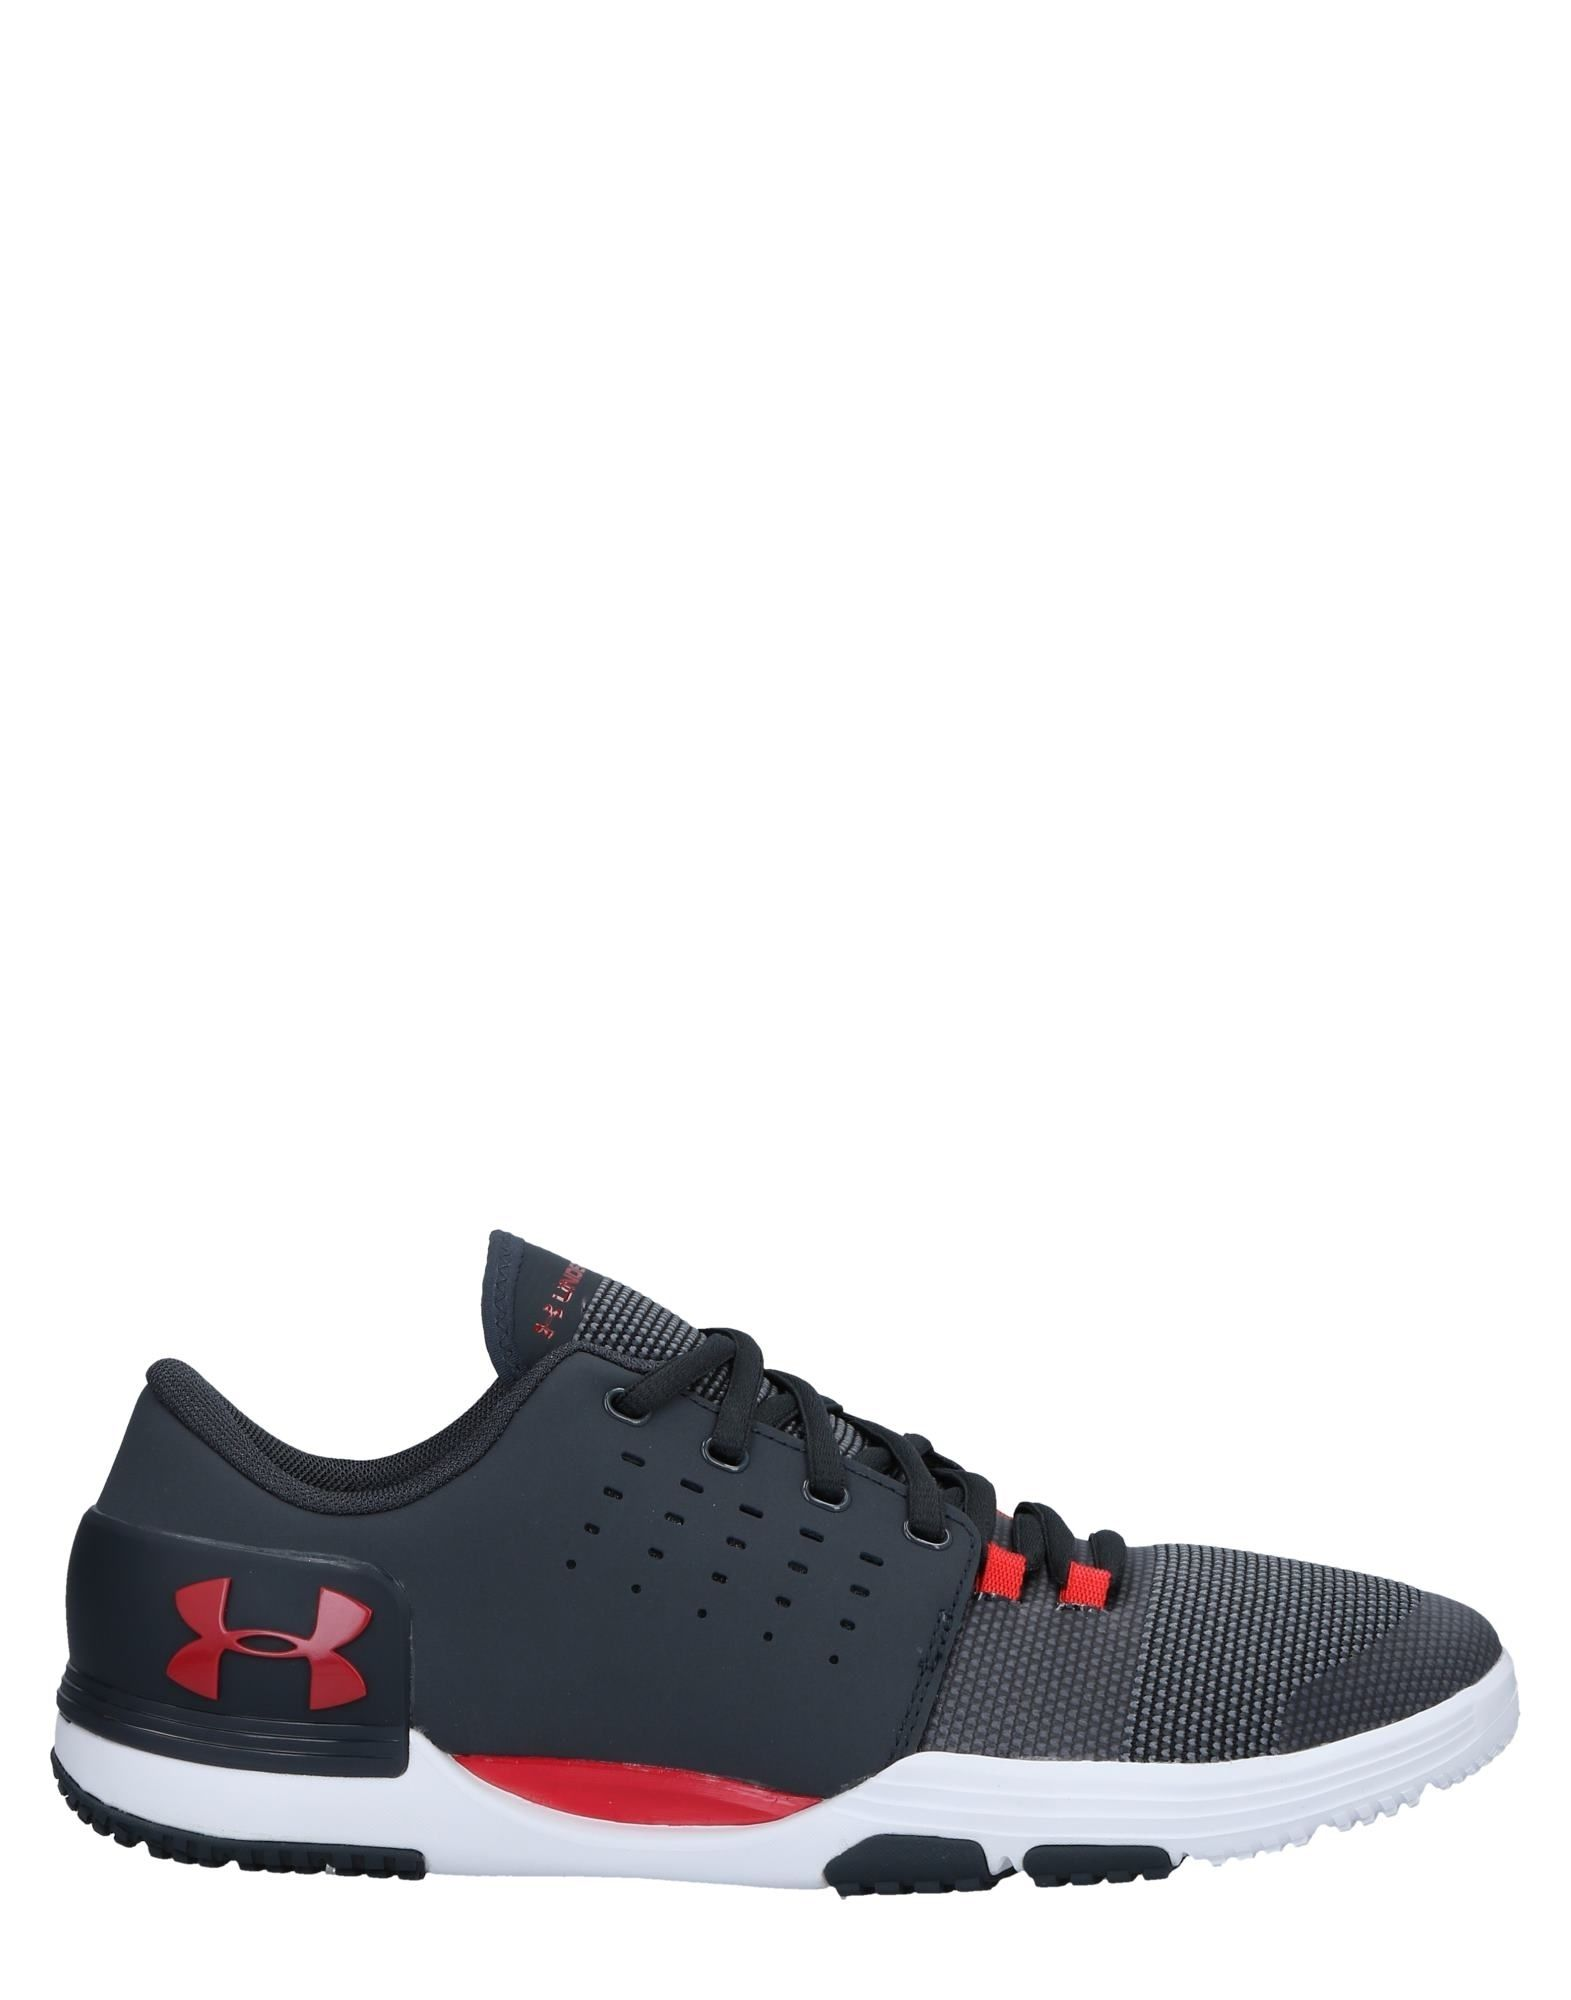 Under Armour Sneakers - Men on Under Armour Sneakers online on Men  Australia - 11519674IW c8ea3f